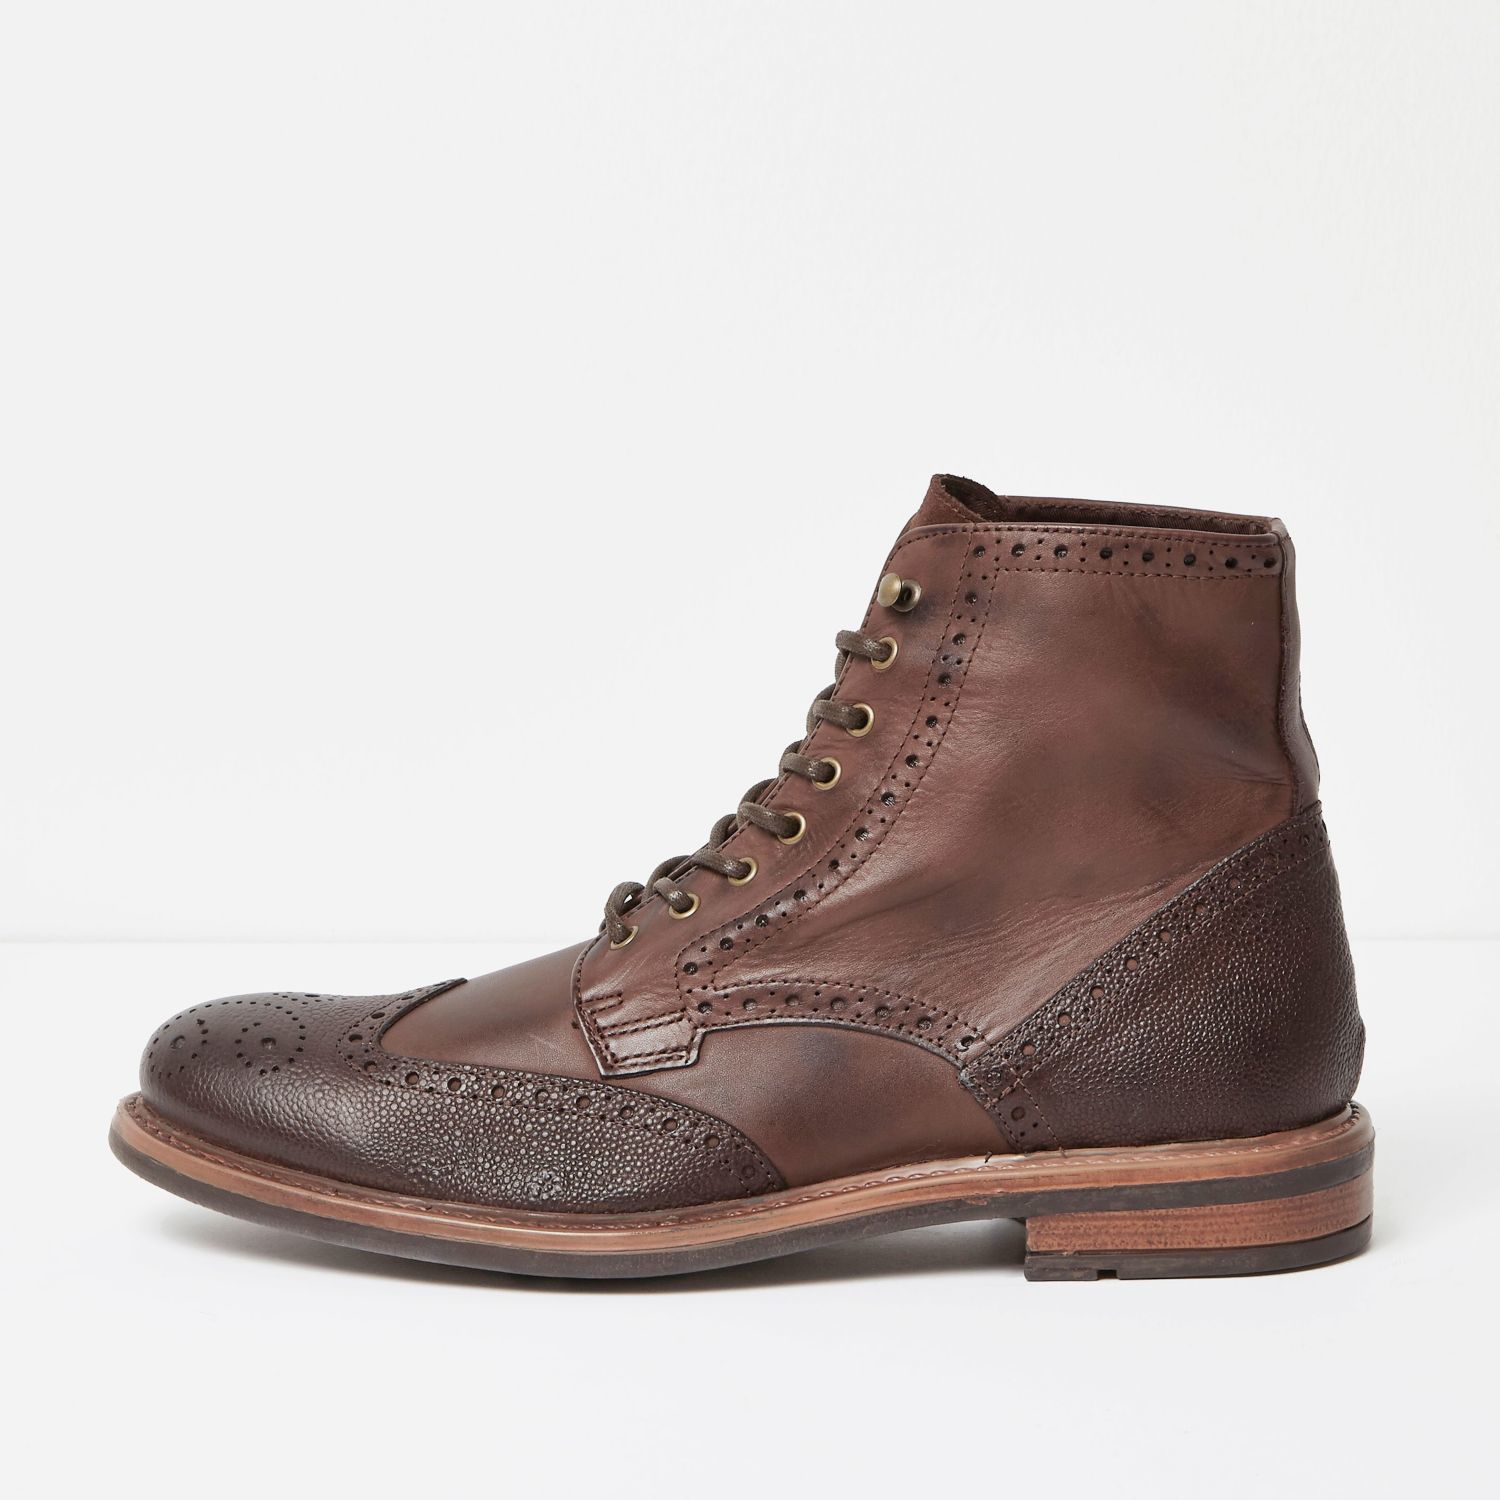 Find great deals on eBay for loake mens brogue boots. Shop with confidence.